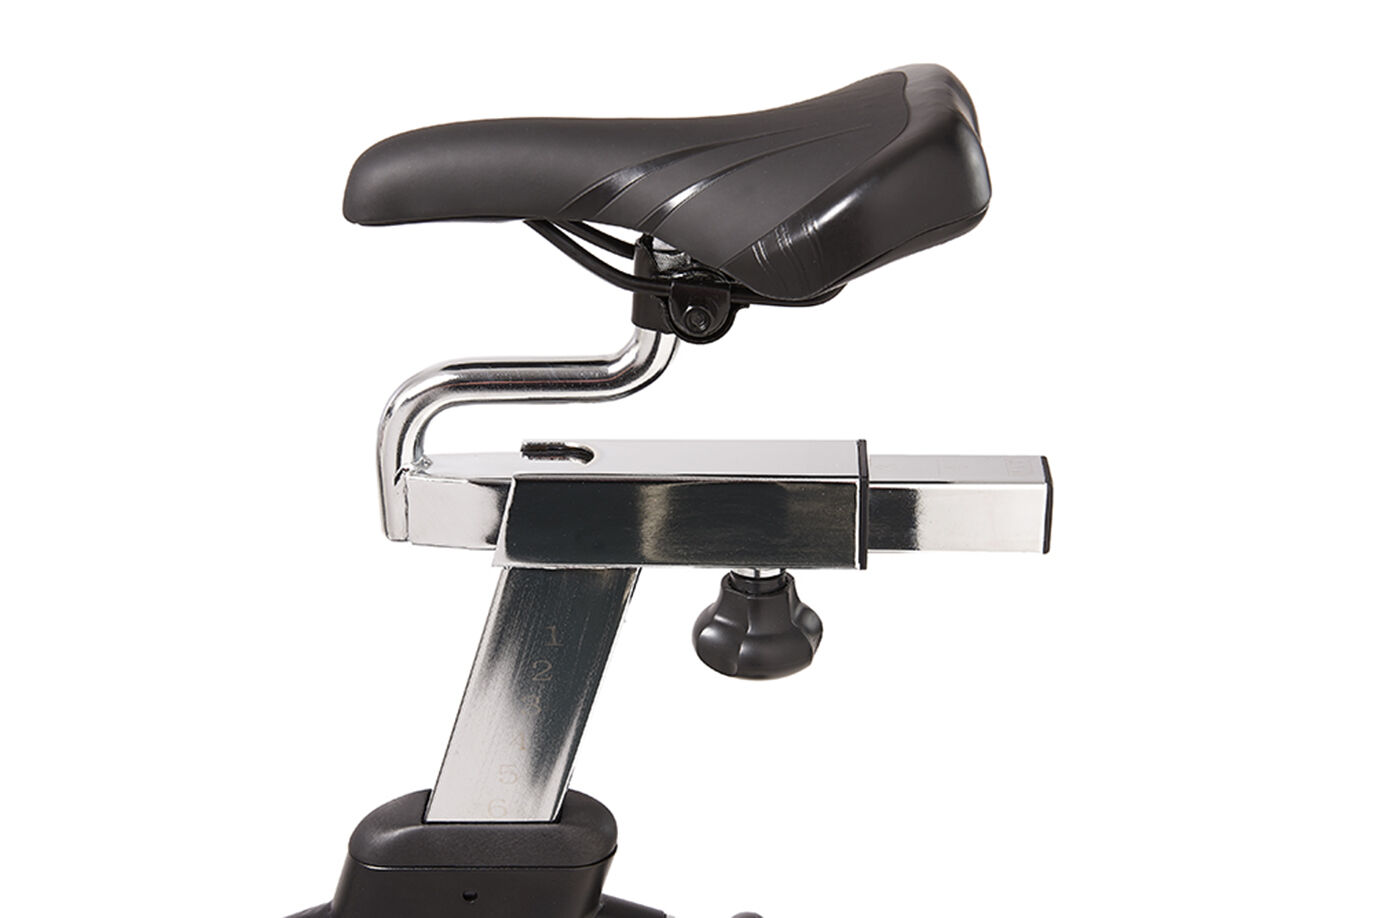 Adjustable Seat on the JTX Cyclo 6 | Used Spin Bike Alternative